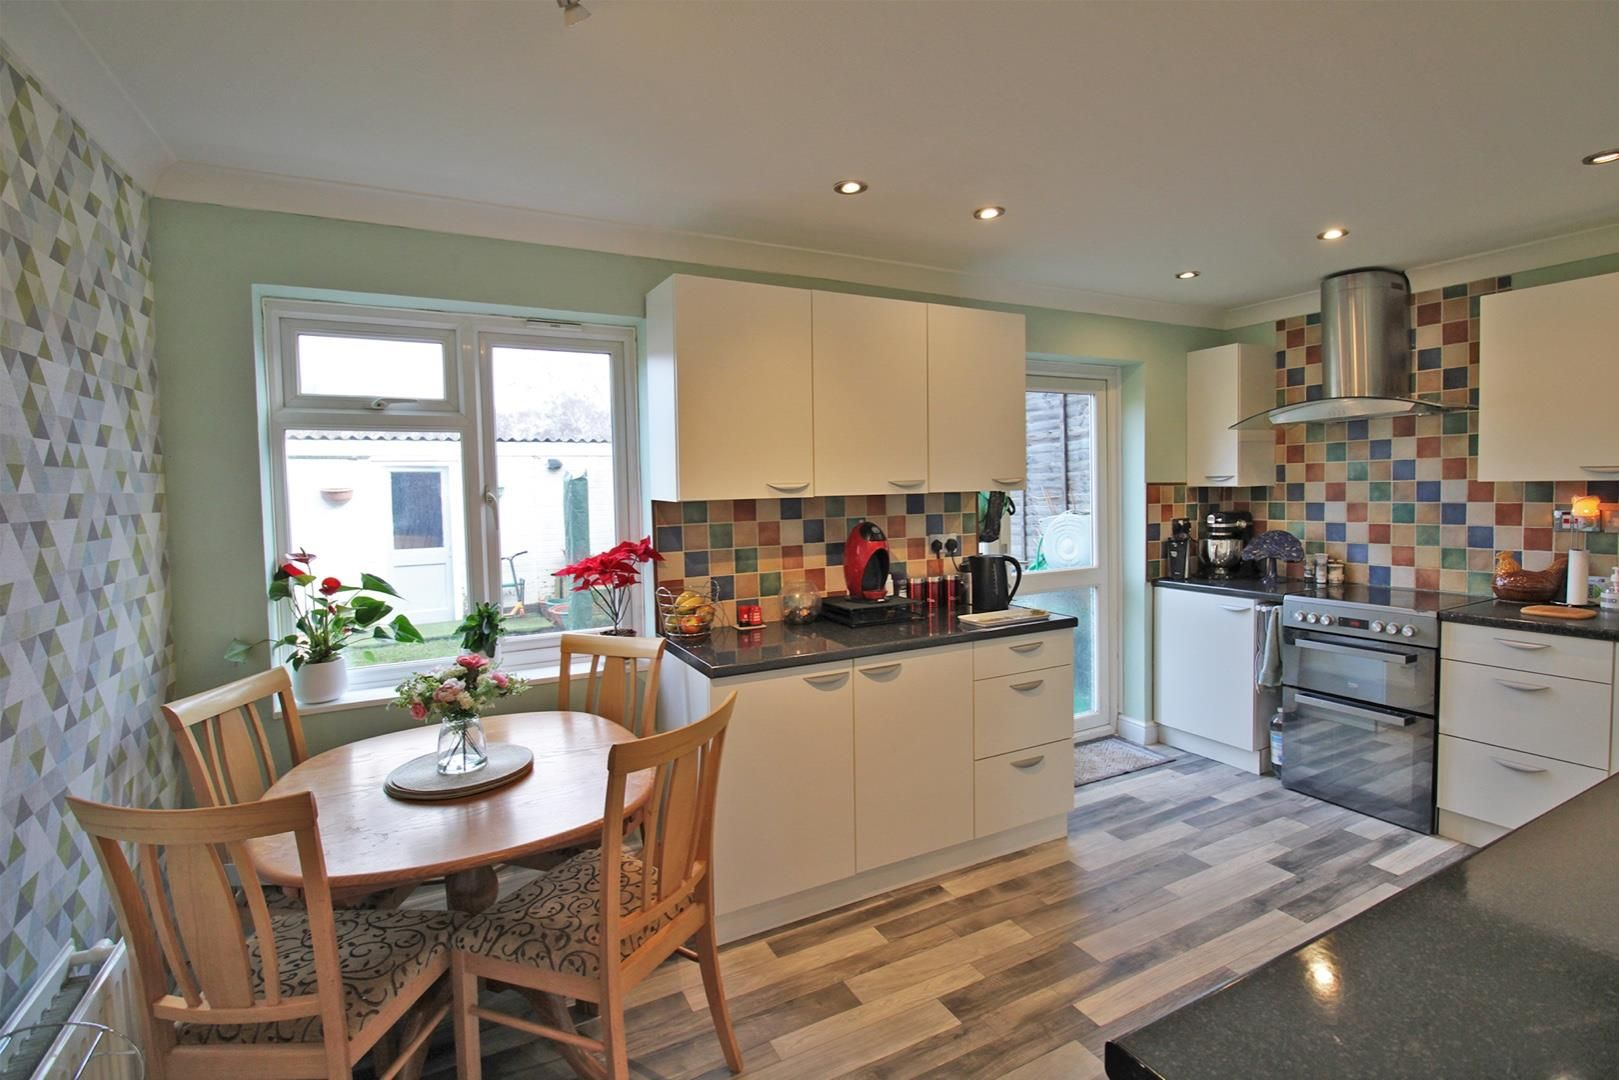 4 bed terraced for sale in Hanworth  - Property Image 2